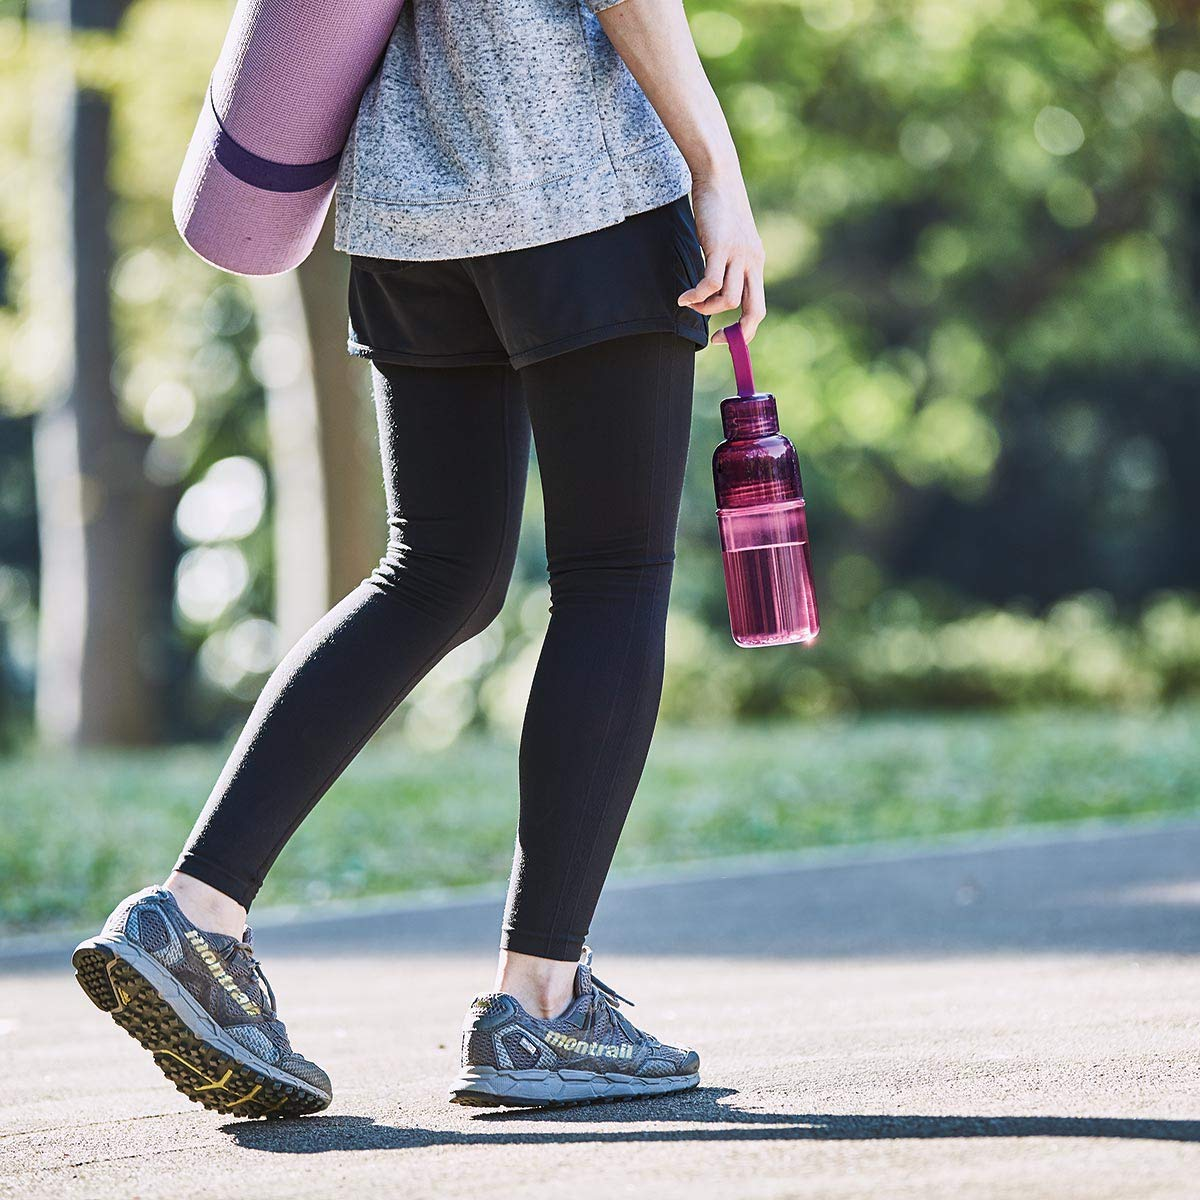 16.2 oz Slicone Strap For Easy Carrying Lightweight And Durable Easy To Keep Clean Magenta Kinto Workout Bottle 480ml